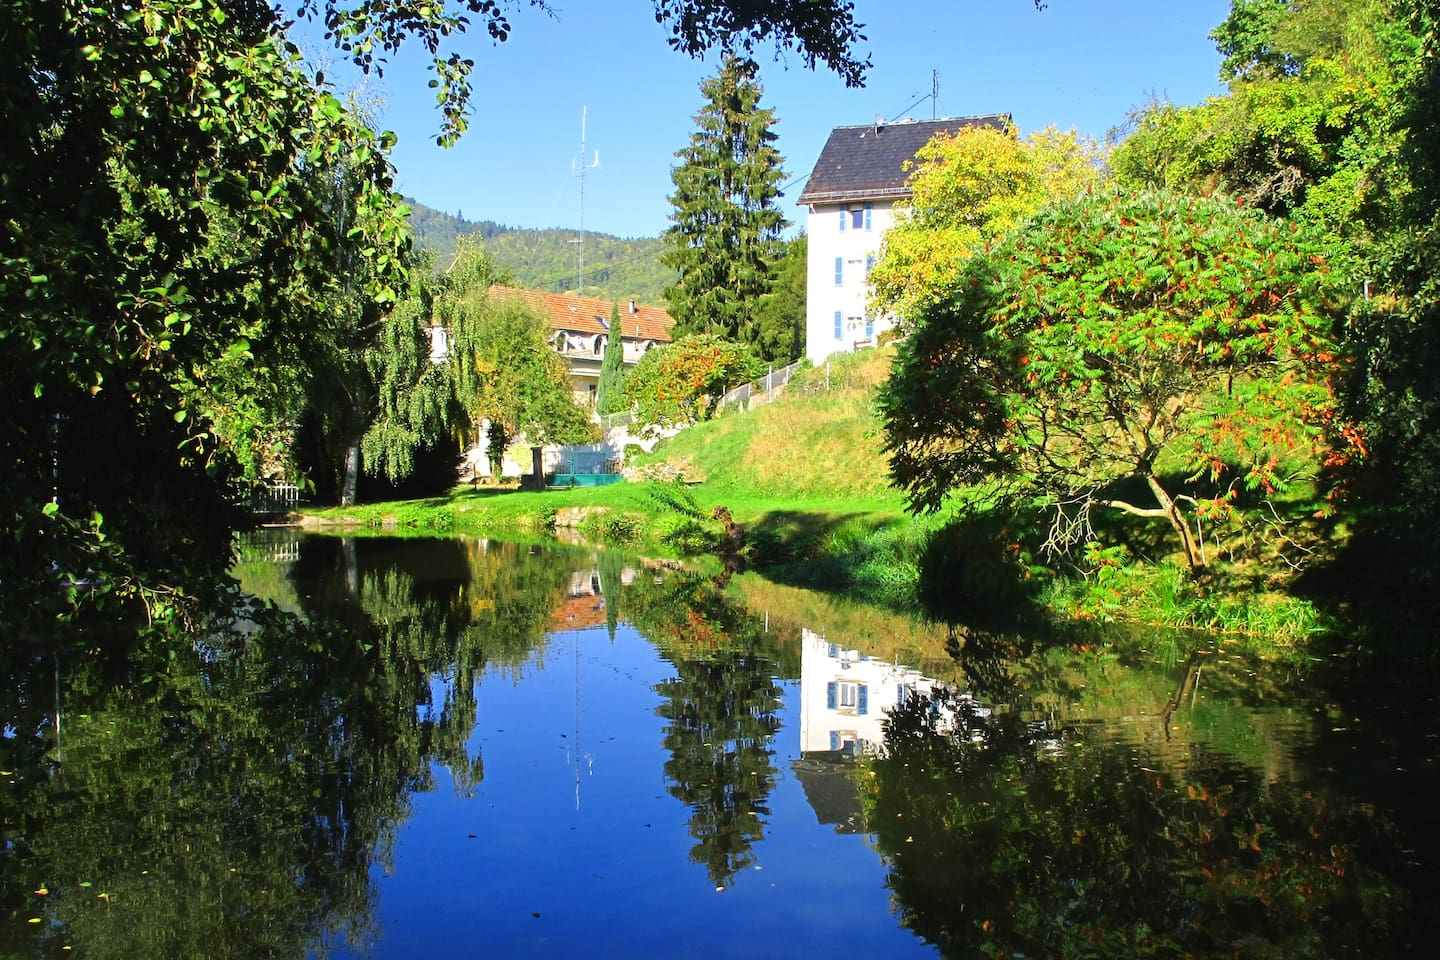 Maison Bellevue seen from our private pond